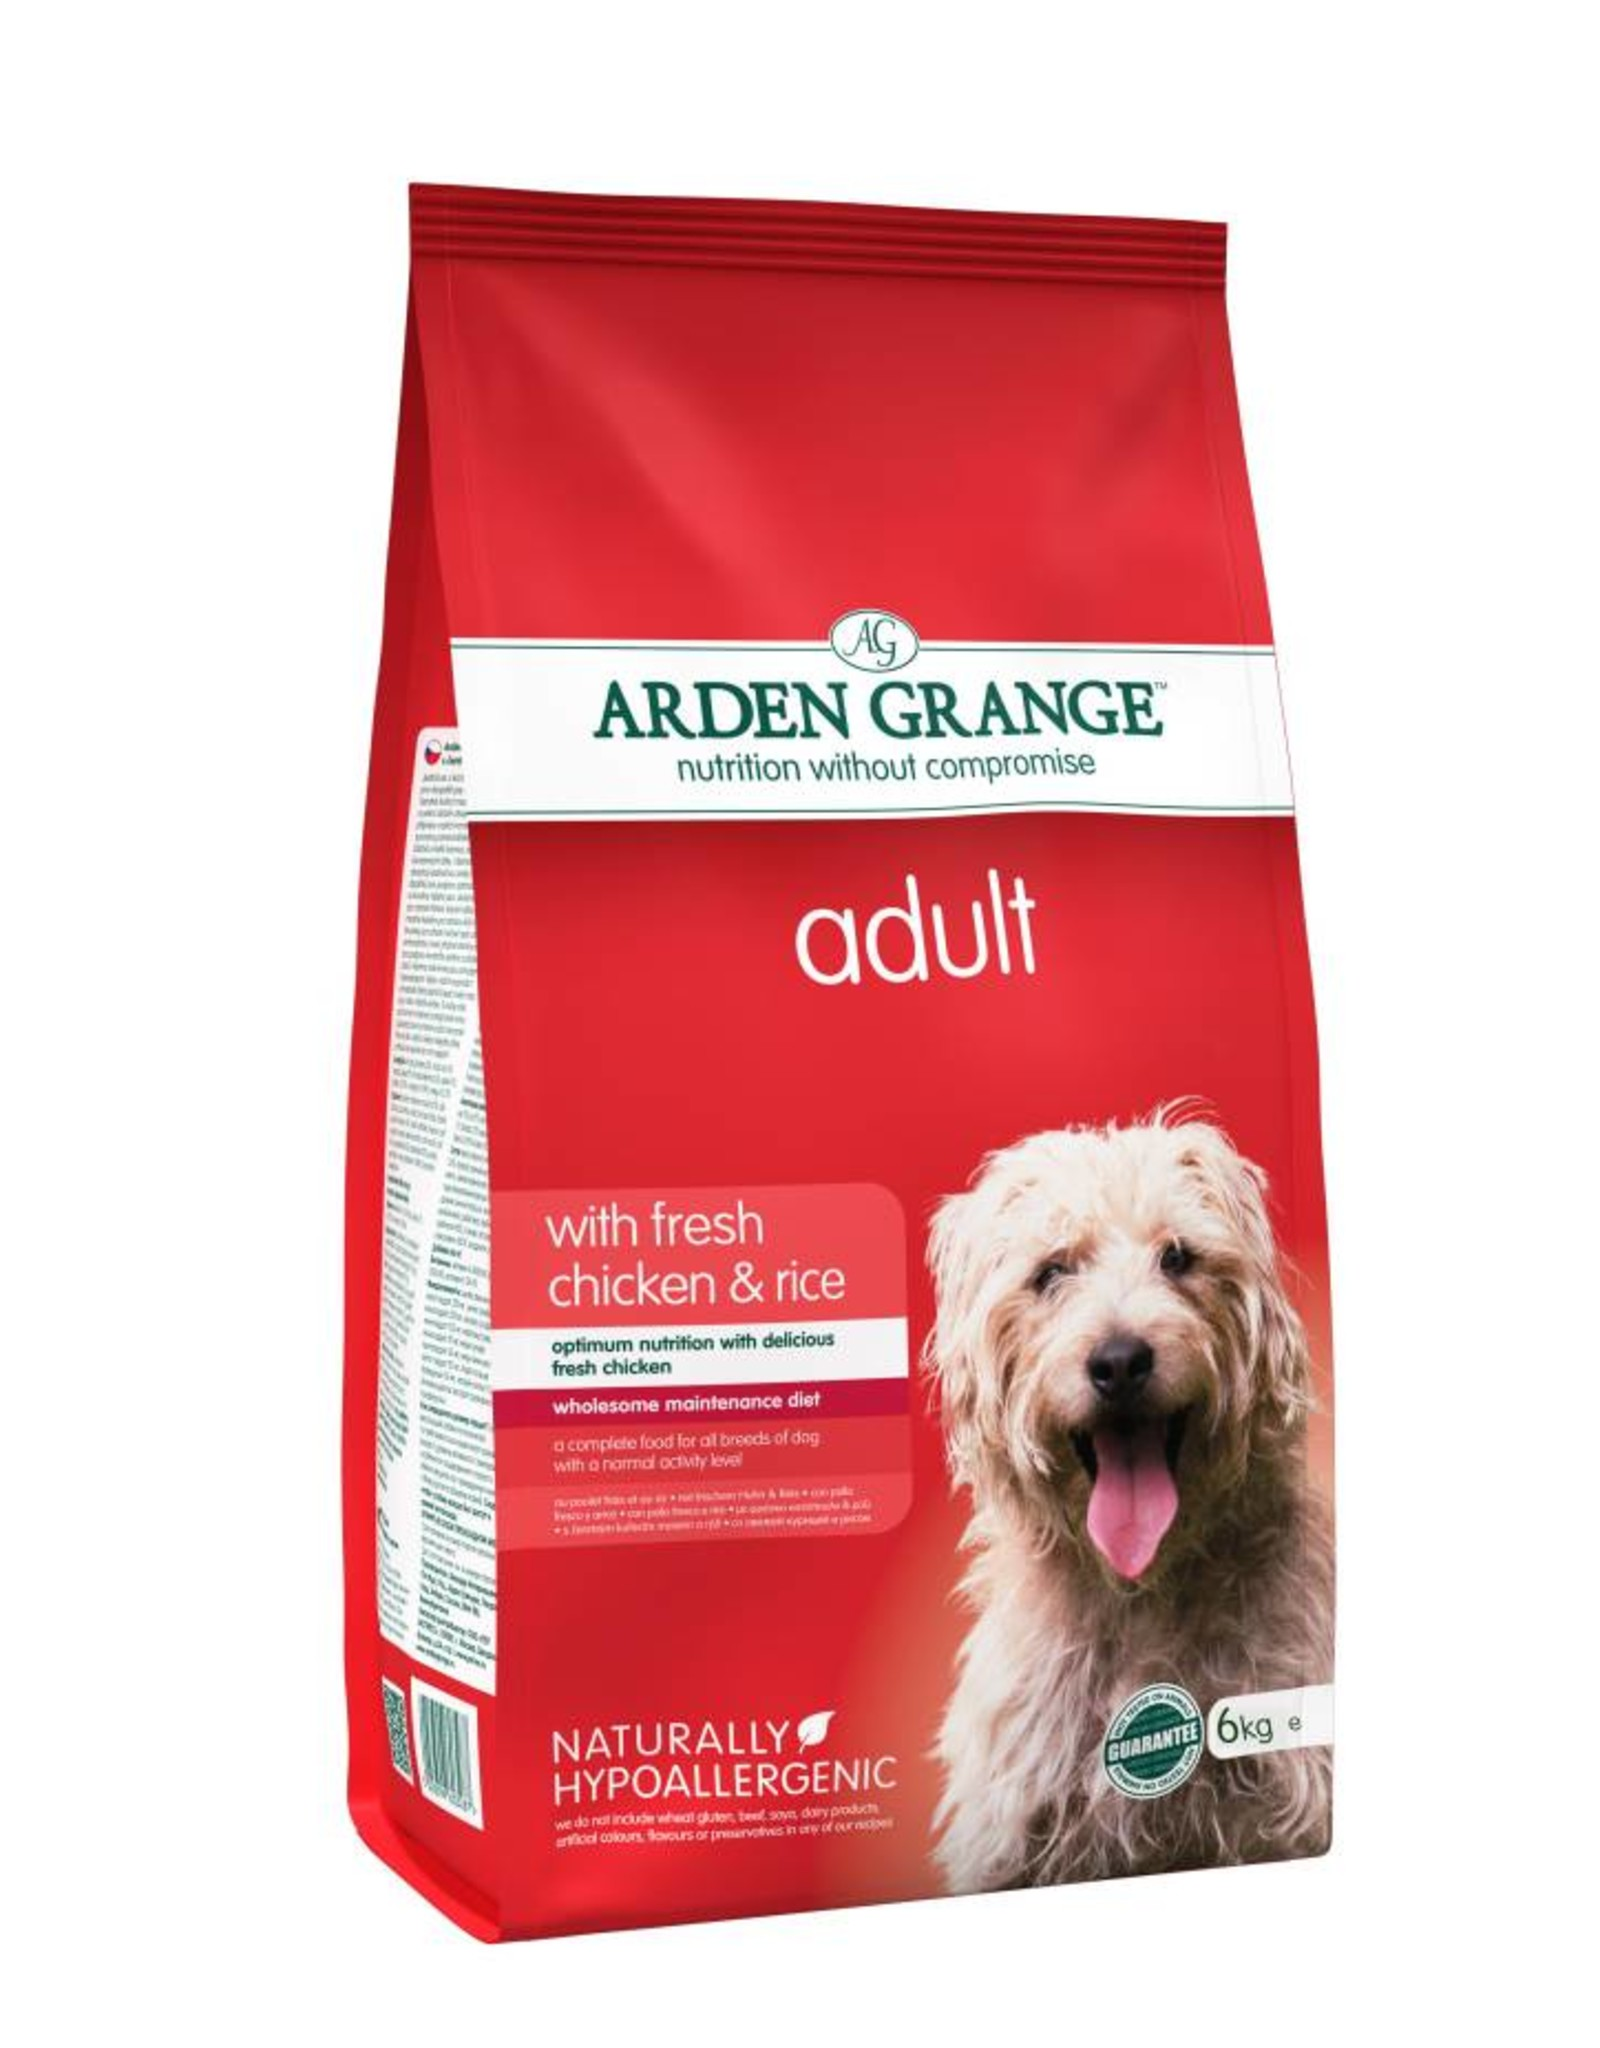 Arden Grange Adult Dog Dry Food, Chicken & Rice